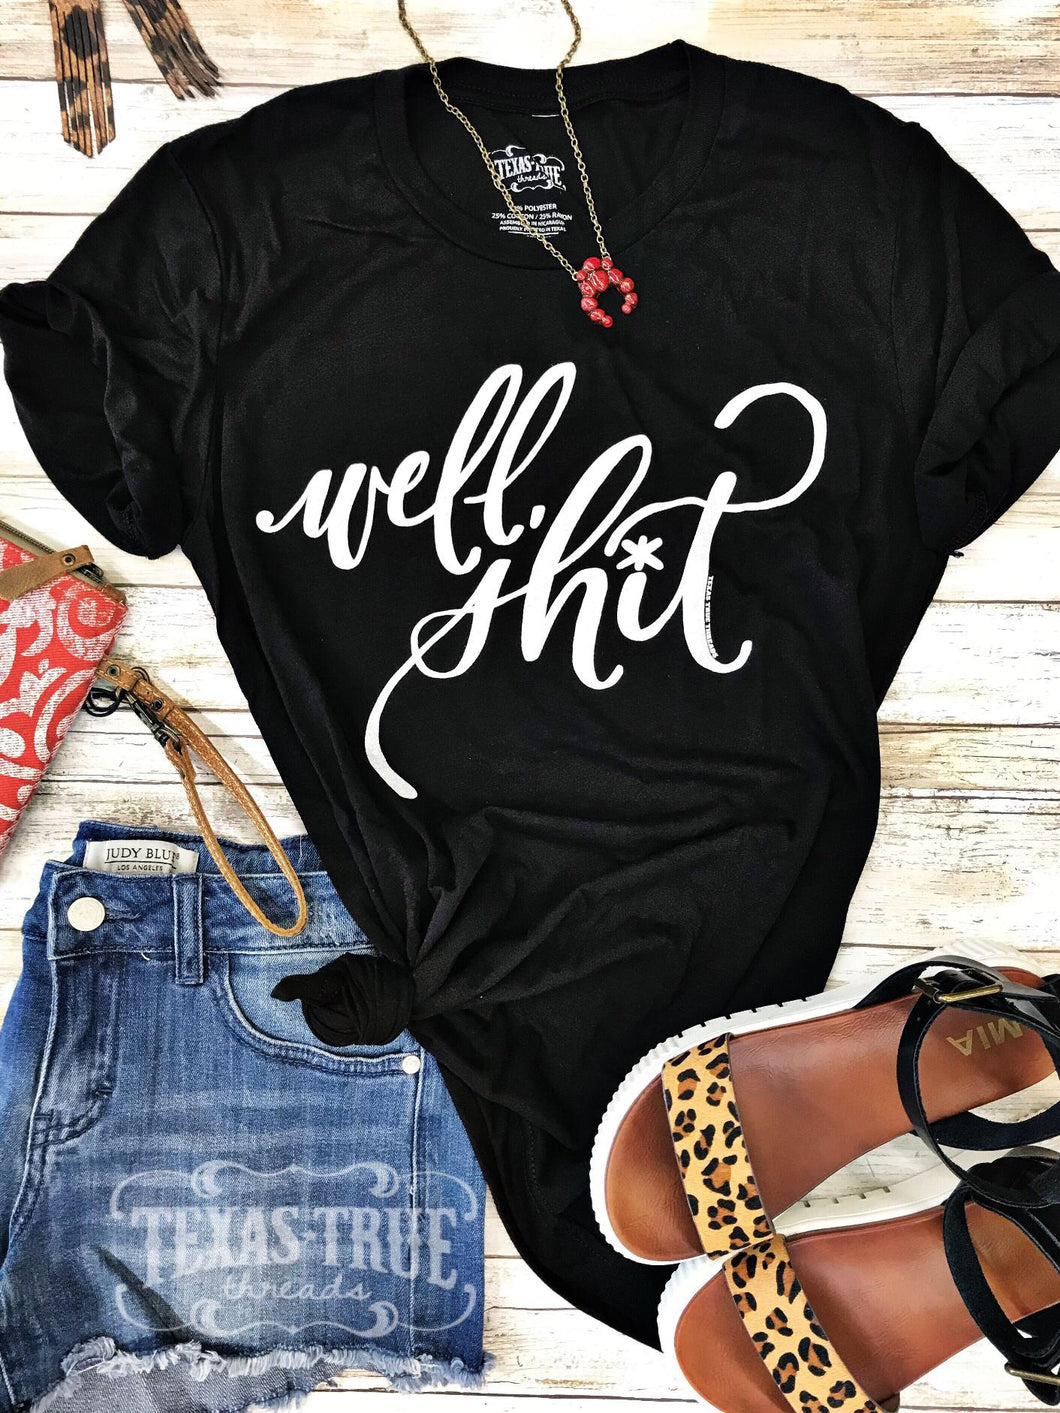 Well Sh*t by Texas True Threads Graphic Tees  Texas True Threads - Horse Creek Boutique